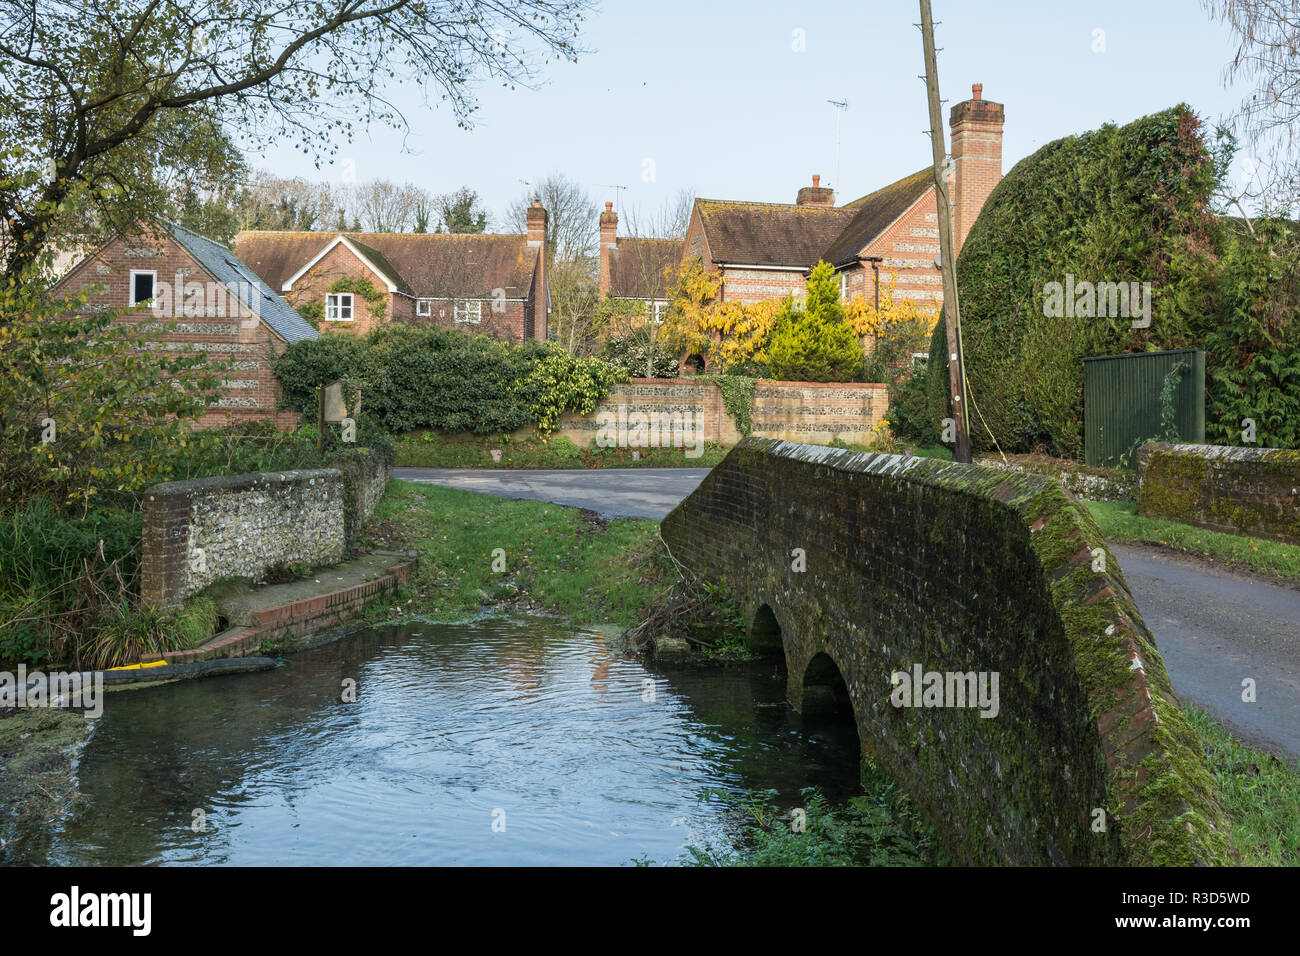 The river Meon passing through the village of Warnford in Hampshire, UK. - Stock Image